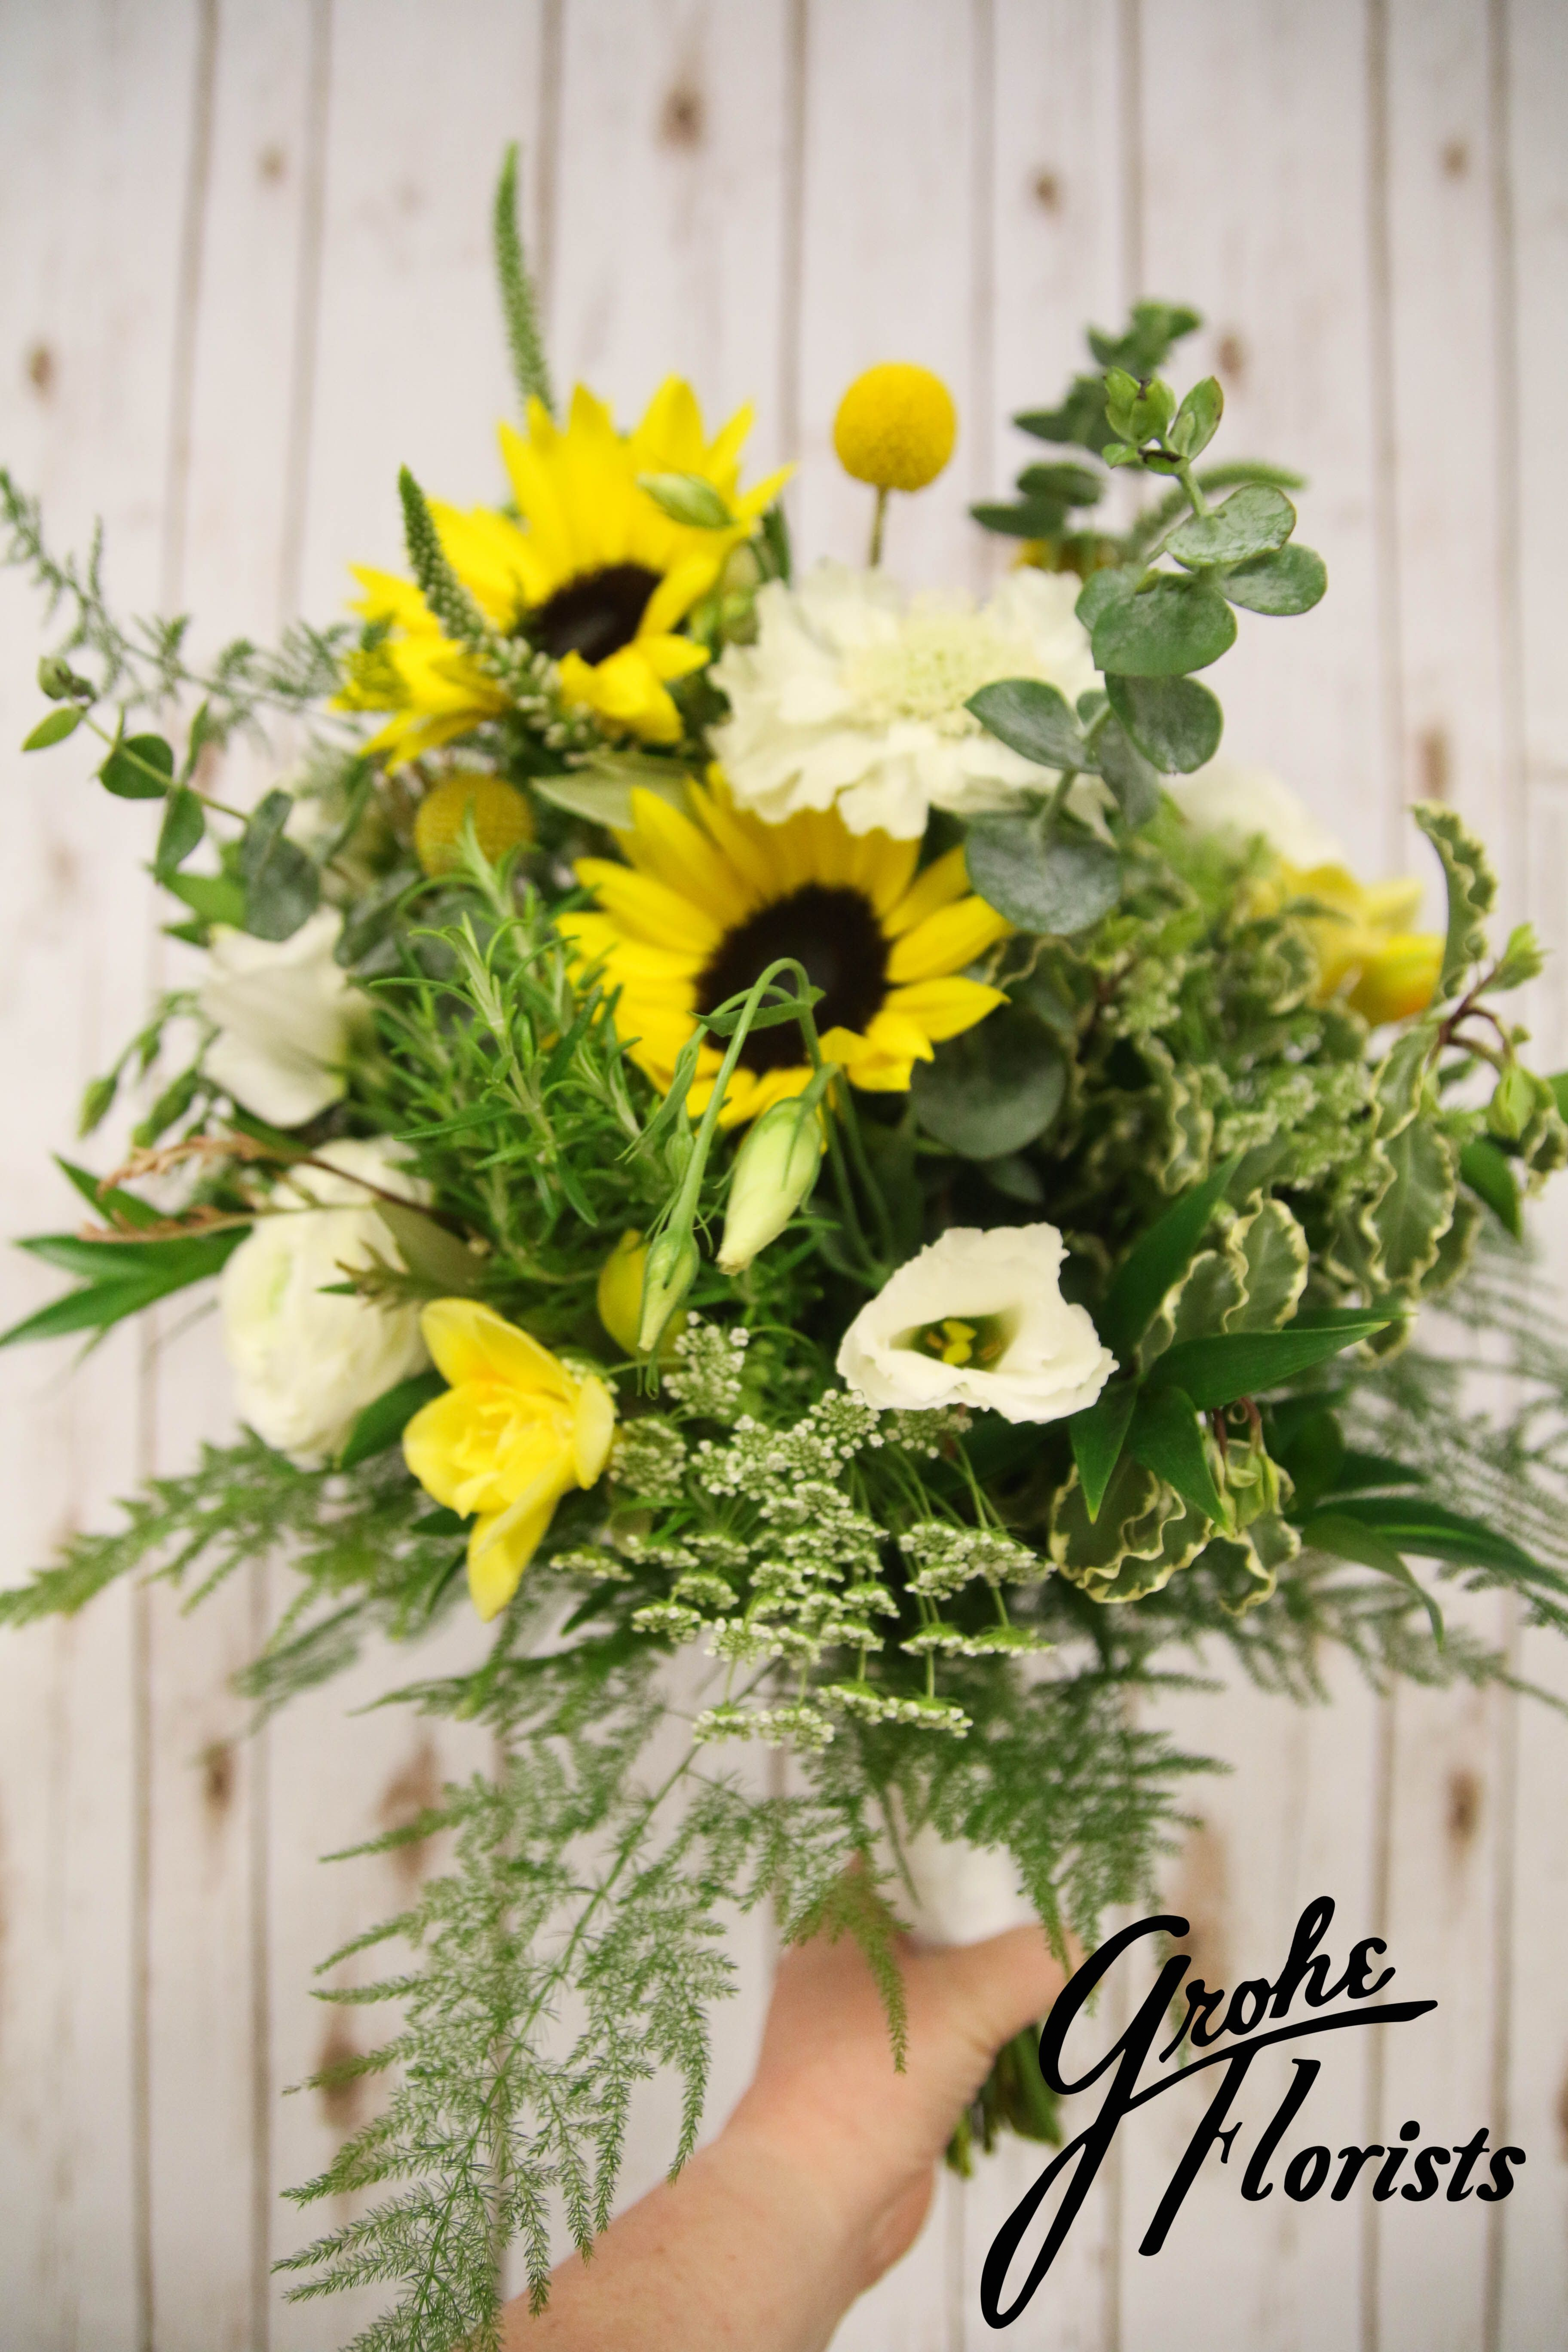 Sunflower wedding yellow and white wedding bridalbouquet santa rosa ca wedding flowers bouquet same day delivery to petaluma rohnert park and windsor california grohe florists and greenhouse izmirmasajfo